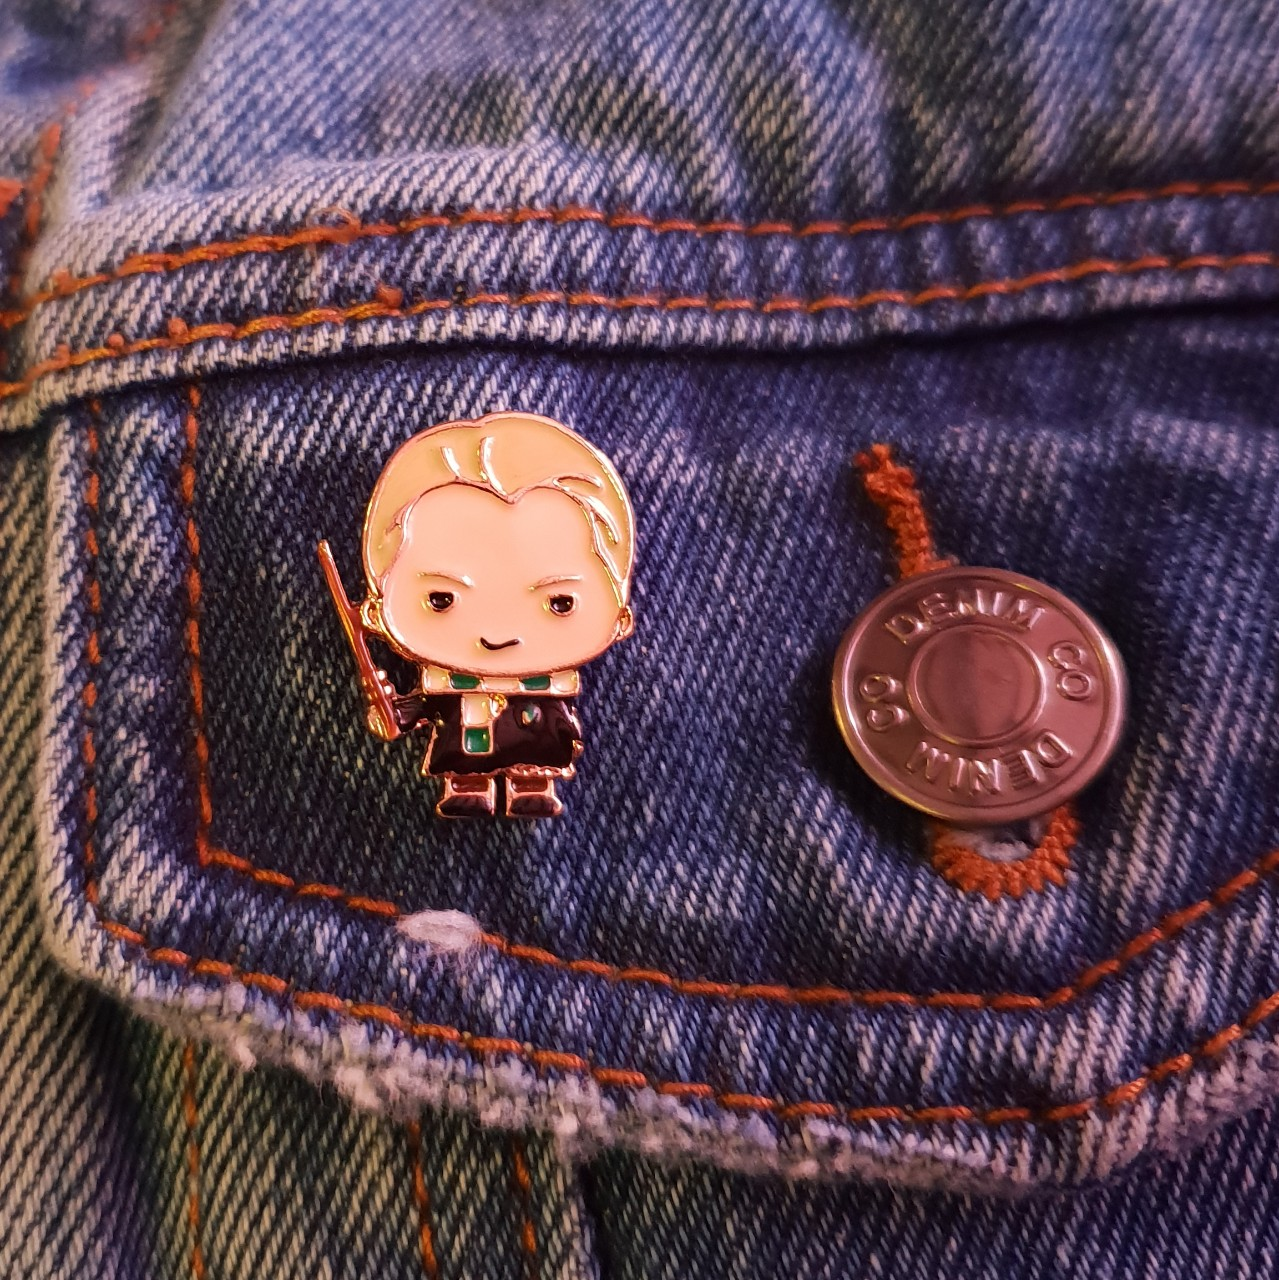 Pin Draco Malfoy Harry Potter